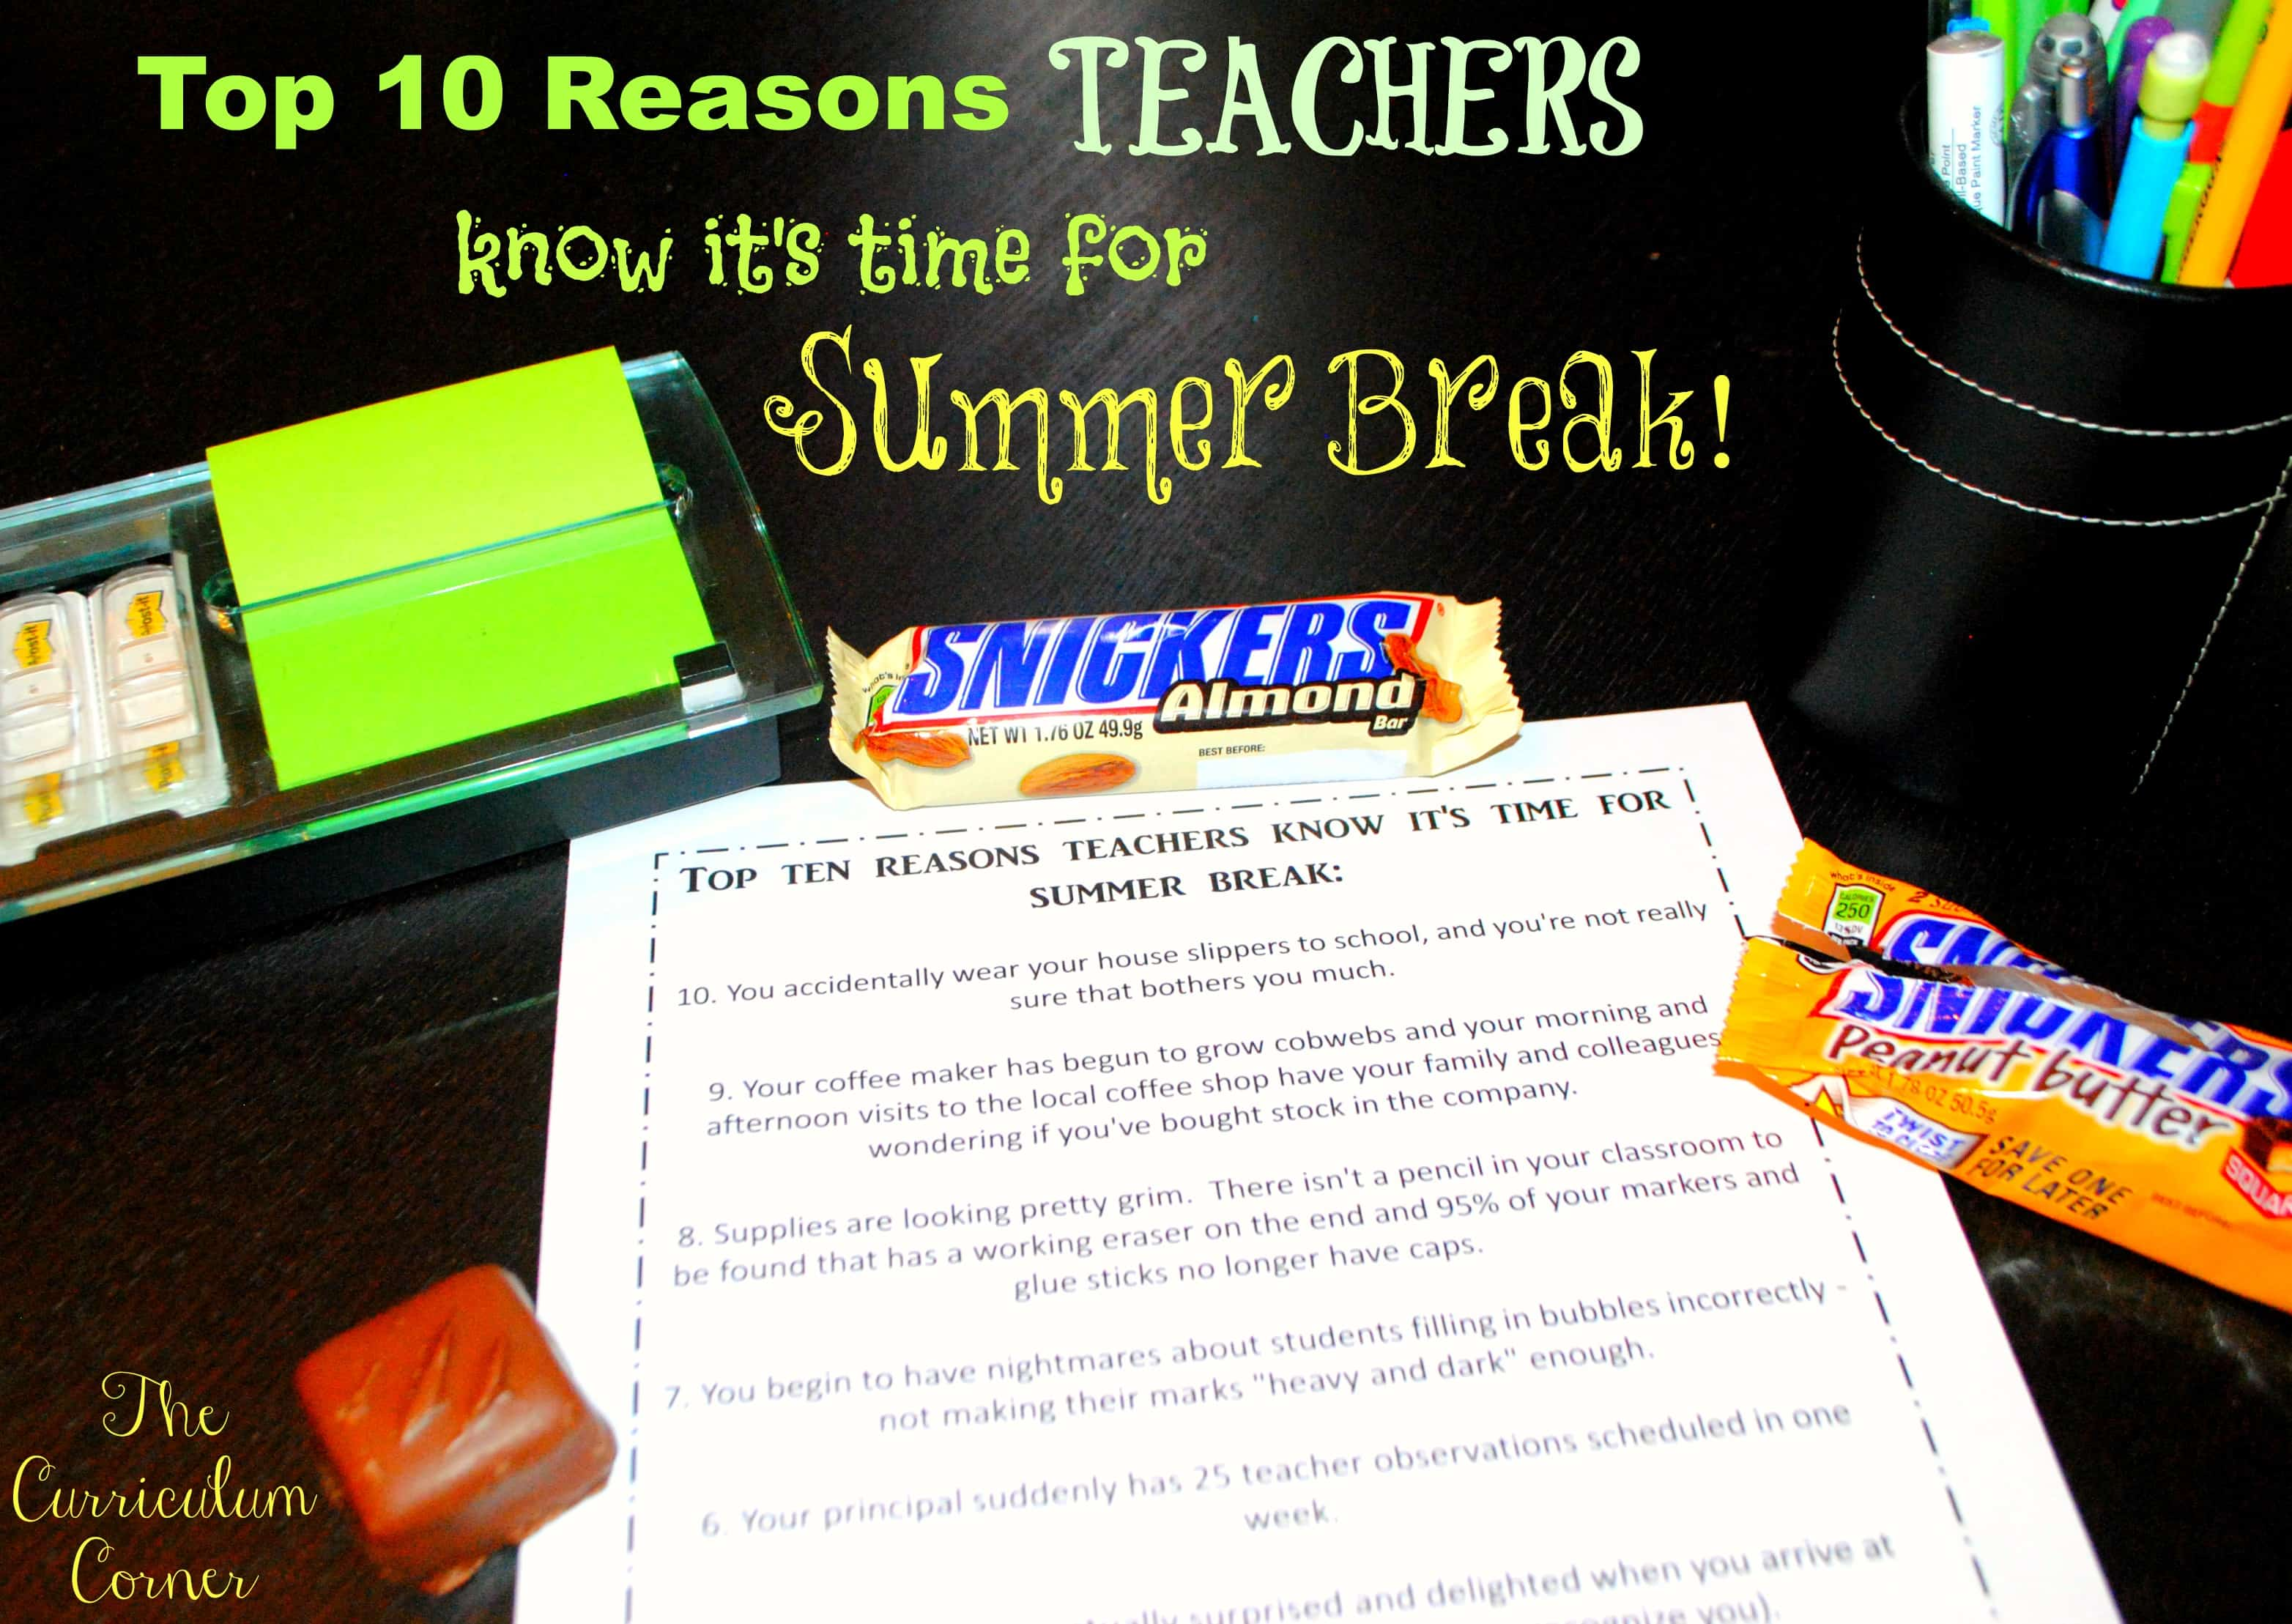 Top Ten Reasons Teachers Know It's Time for Summer Break